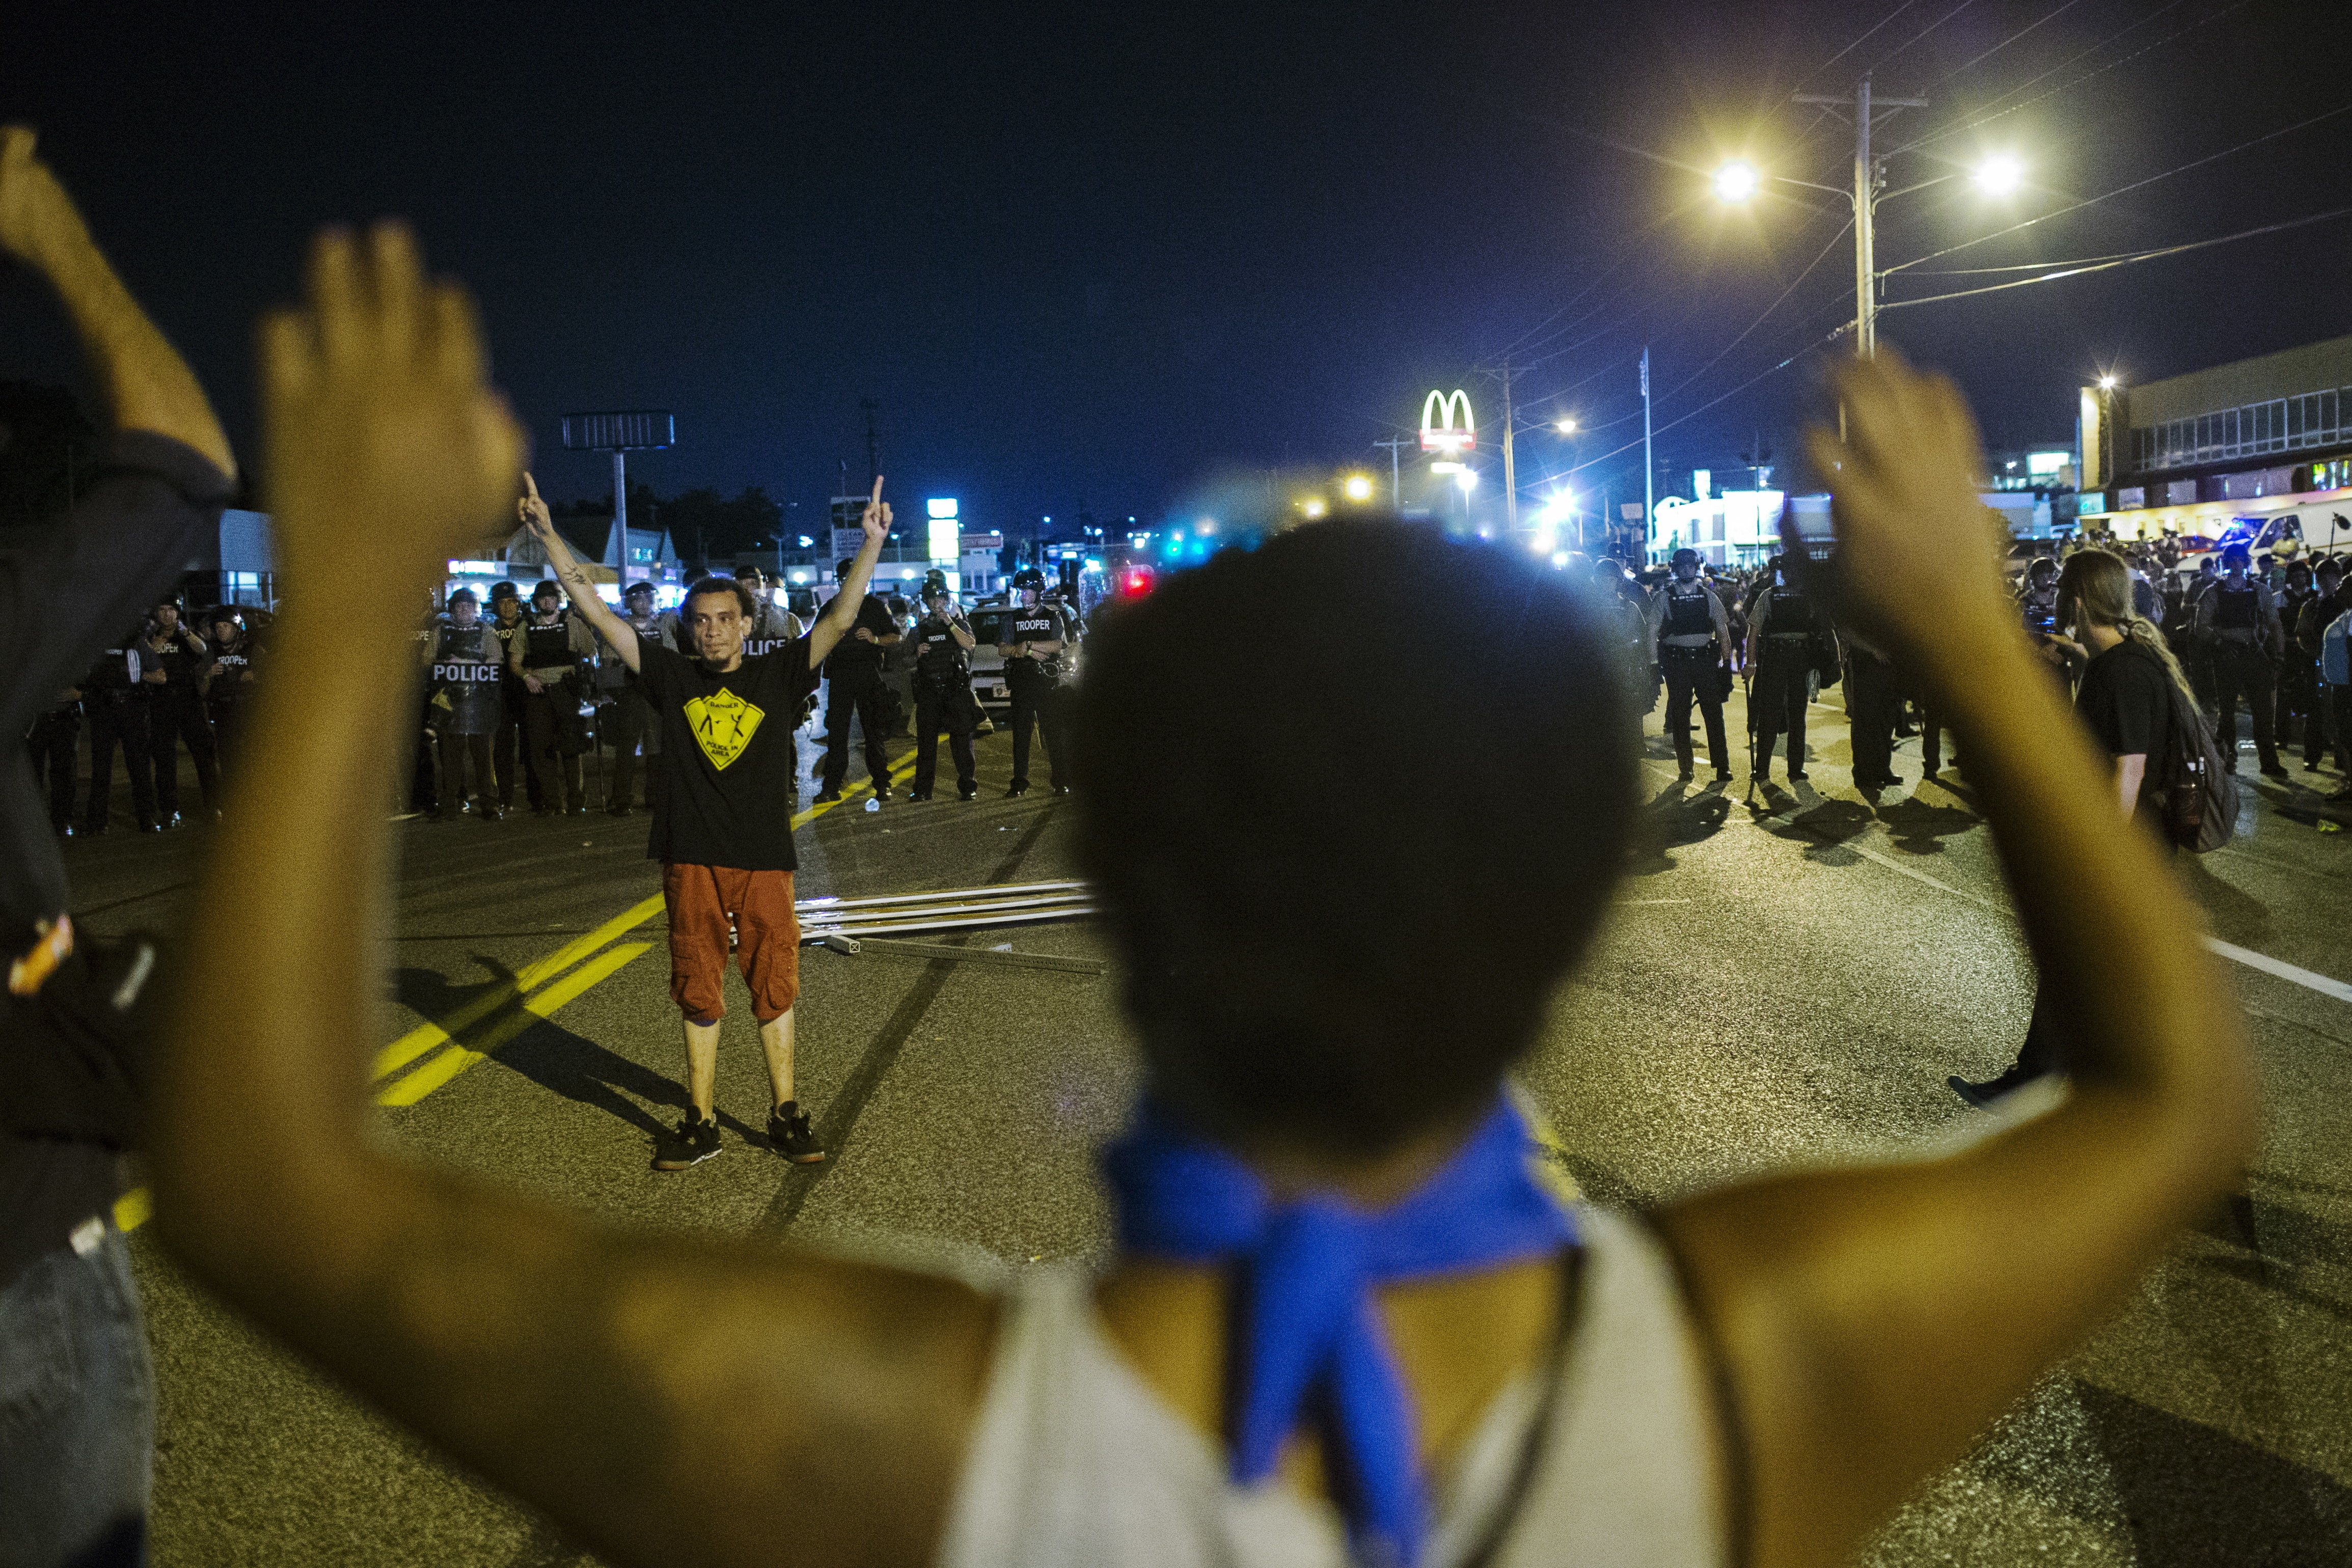 Anti-police demonstrators gesture at a line of St Louis County police officers during protests in Ferguson, Missouri August 11, 2015. Police in riot gear clashed with protesters who had gathered in the streets of Ferguson early on Tuesday to mark the anniversary of the police shooting of an unarmed black teen whose death sparked a national outcry over race relations. REUTERS/Lucas Jackson